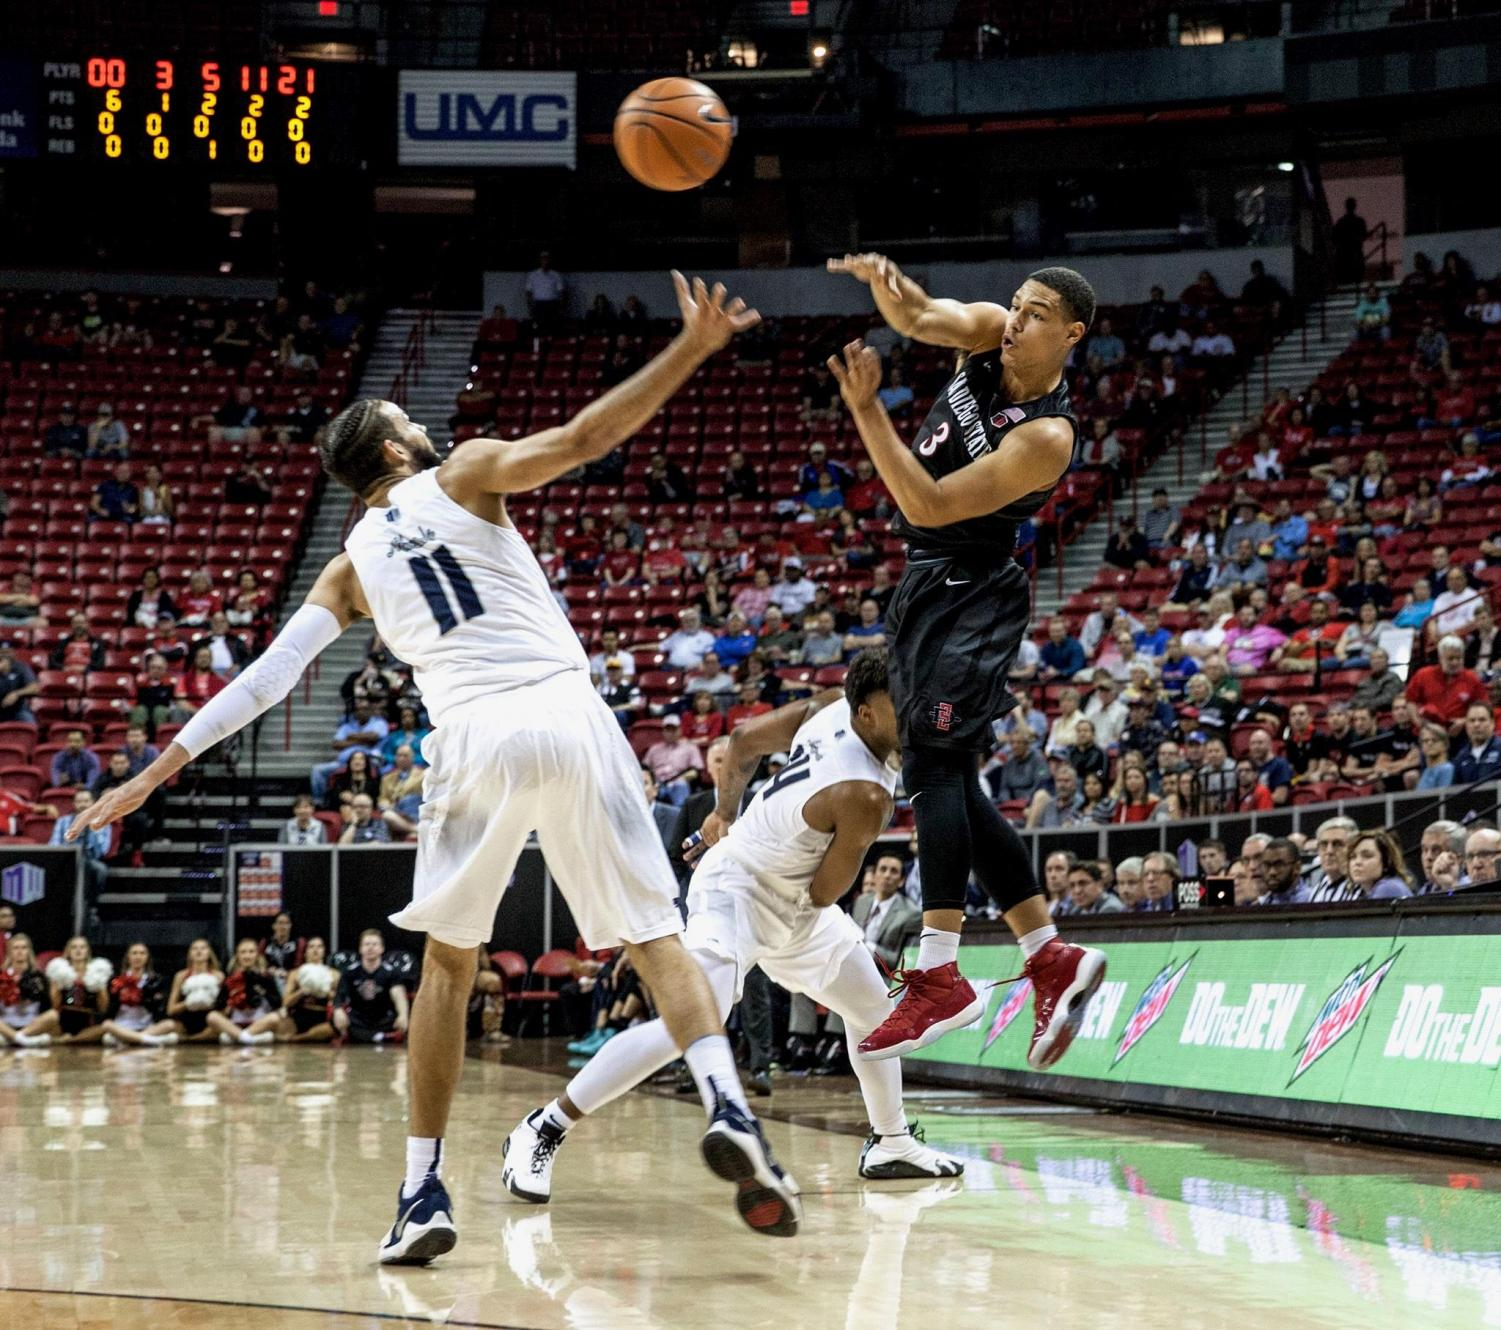 Trey Kell throws a pass during the Aztecs 90-73 victory over Nevada on March 9 at the Thomas & Mack Center in Las Vegas.